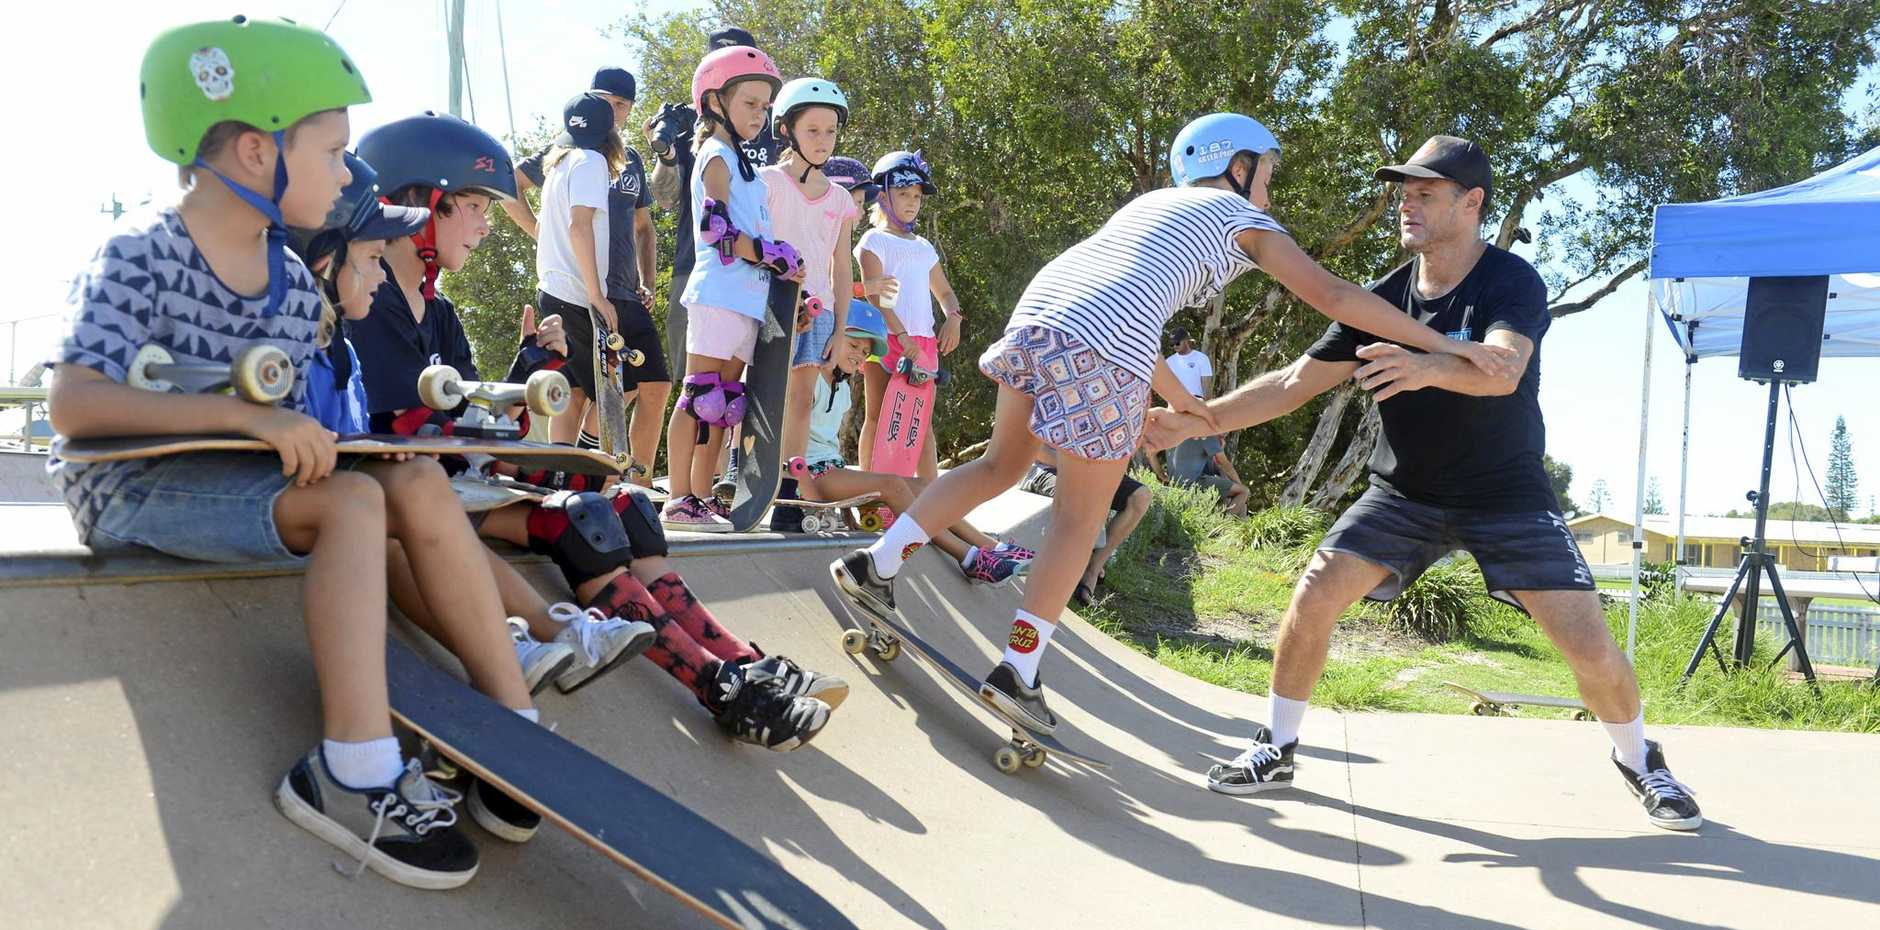 Ex-pro skater Trevor Ward teaches kids at Skate All Day at the Yamba Skate Park. INSET: Grant McGregor helps his daughter Dana learn to skate.